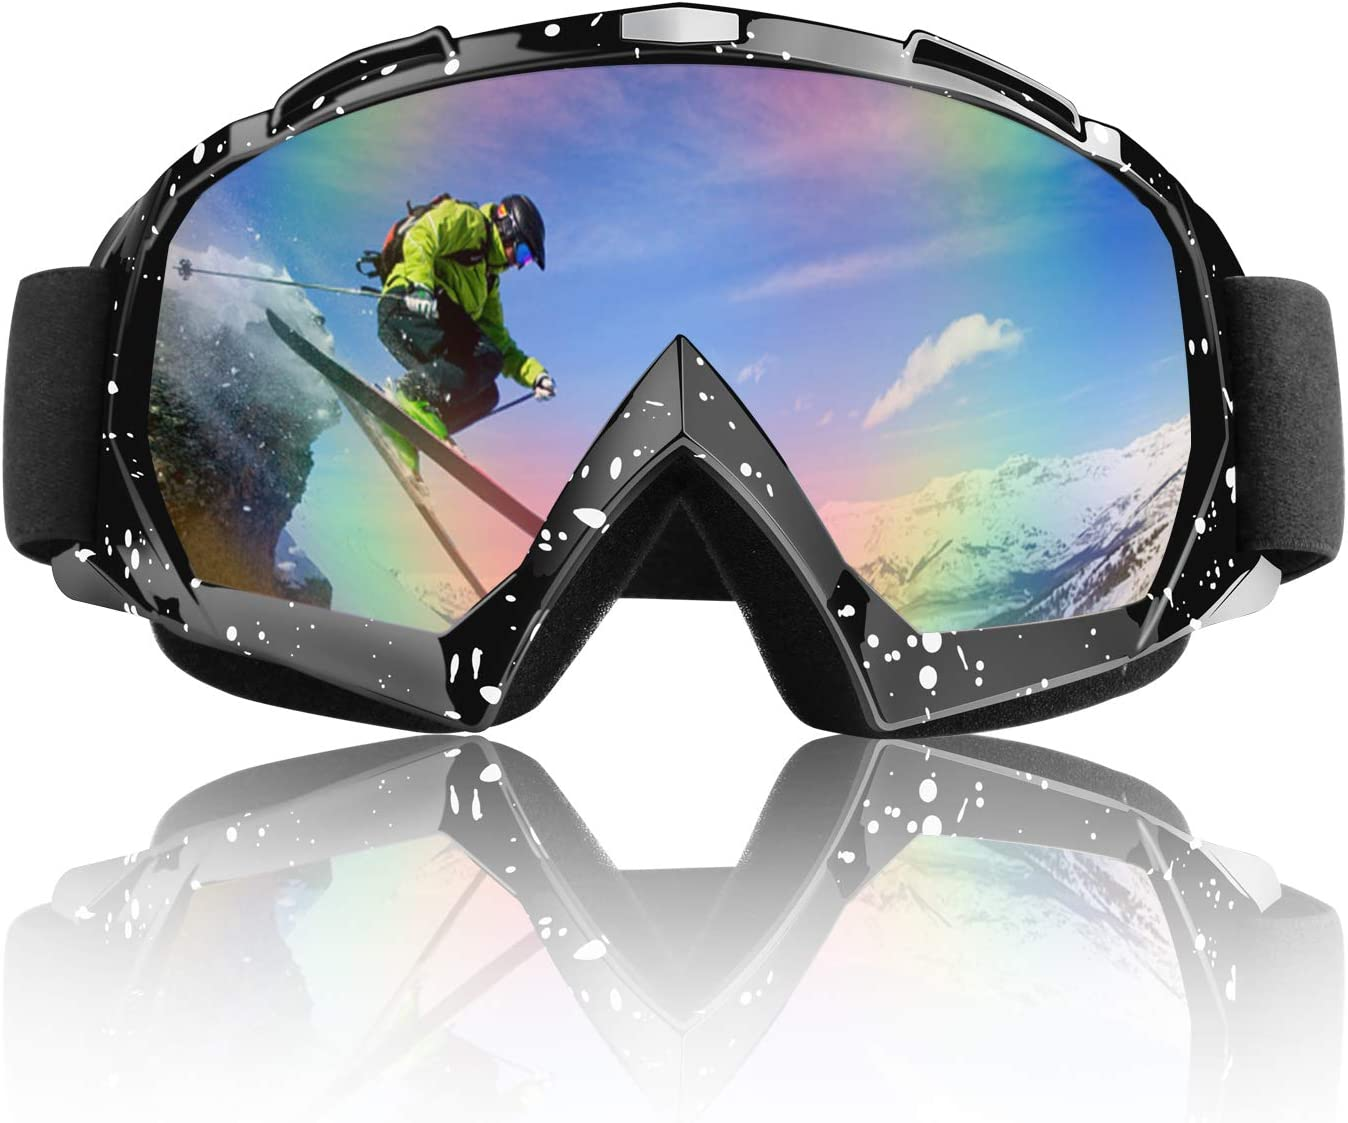 Venoro Ski Goggles, Over Glasses Motorcycle Snowboard Goggles Anti-Fog UV400 Protection Lens, ATV Goggles with Adjustable Strap for Men, Women and Youth